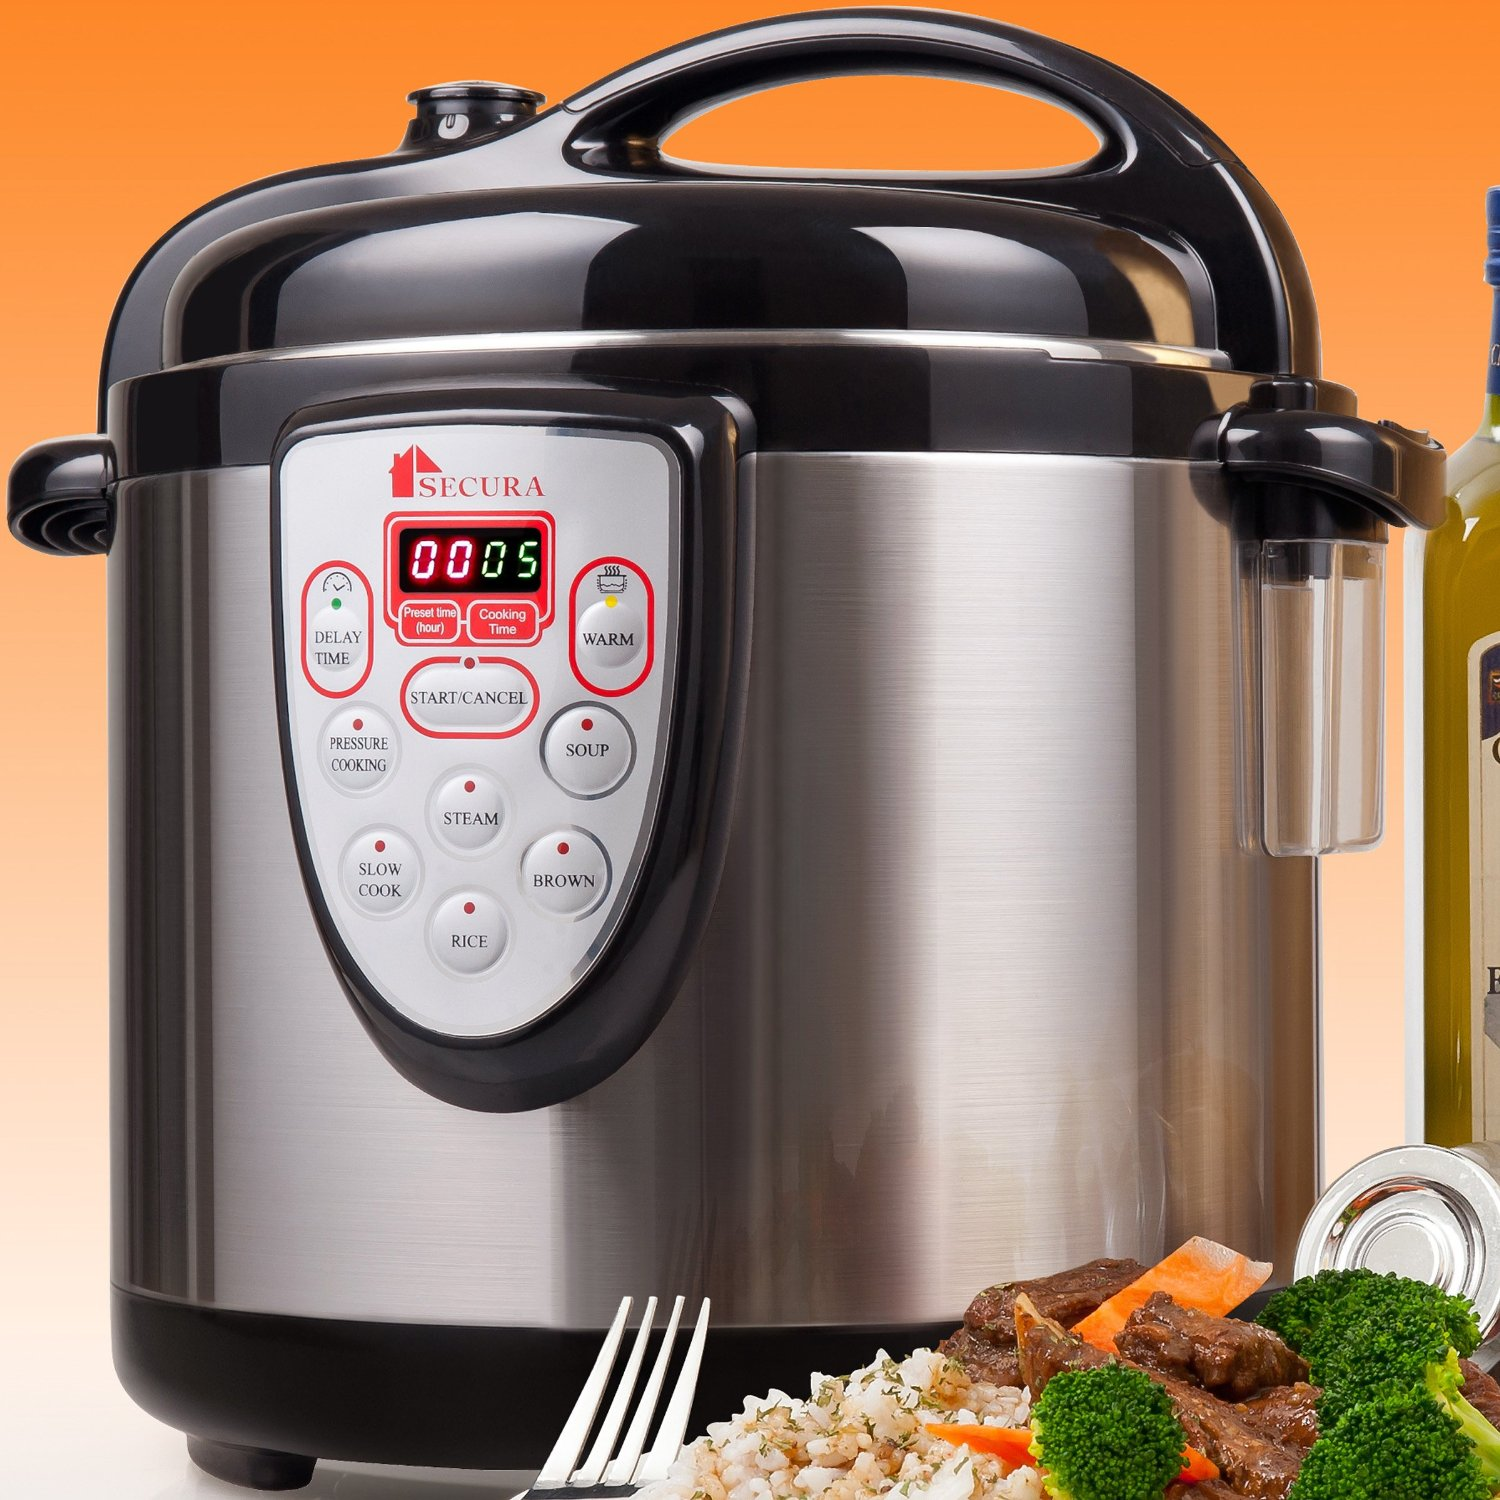 Pressure Cooker Cooking: Kitchen & Dining: Reviews Of Secura 6-in-1 Electric